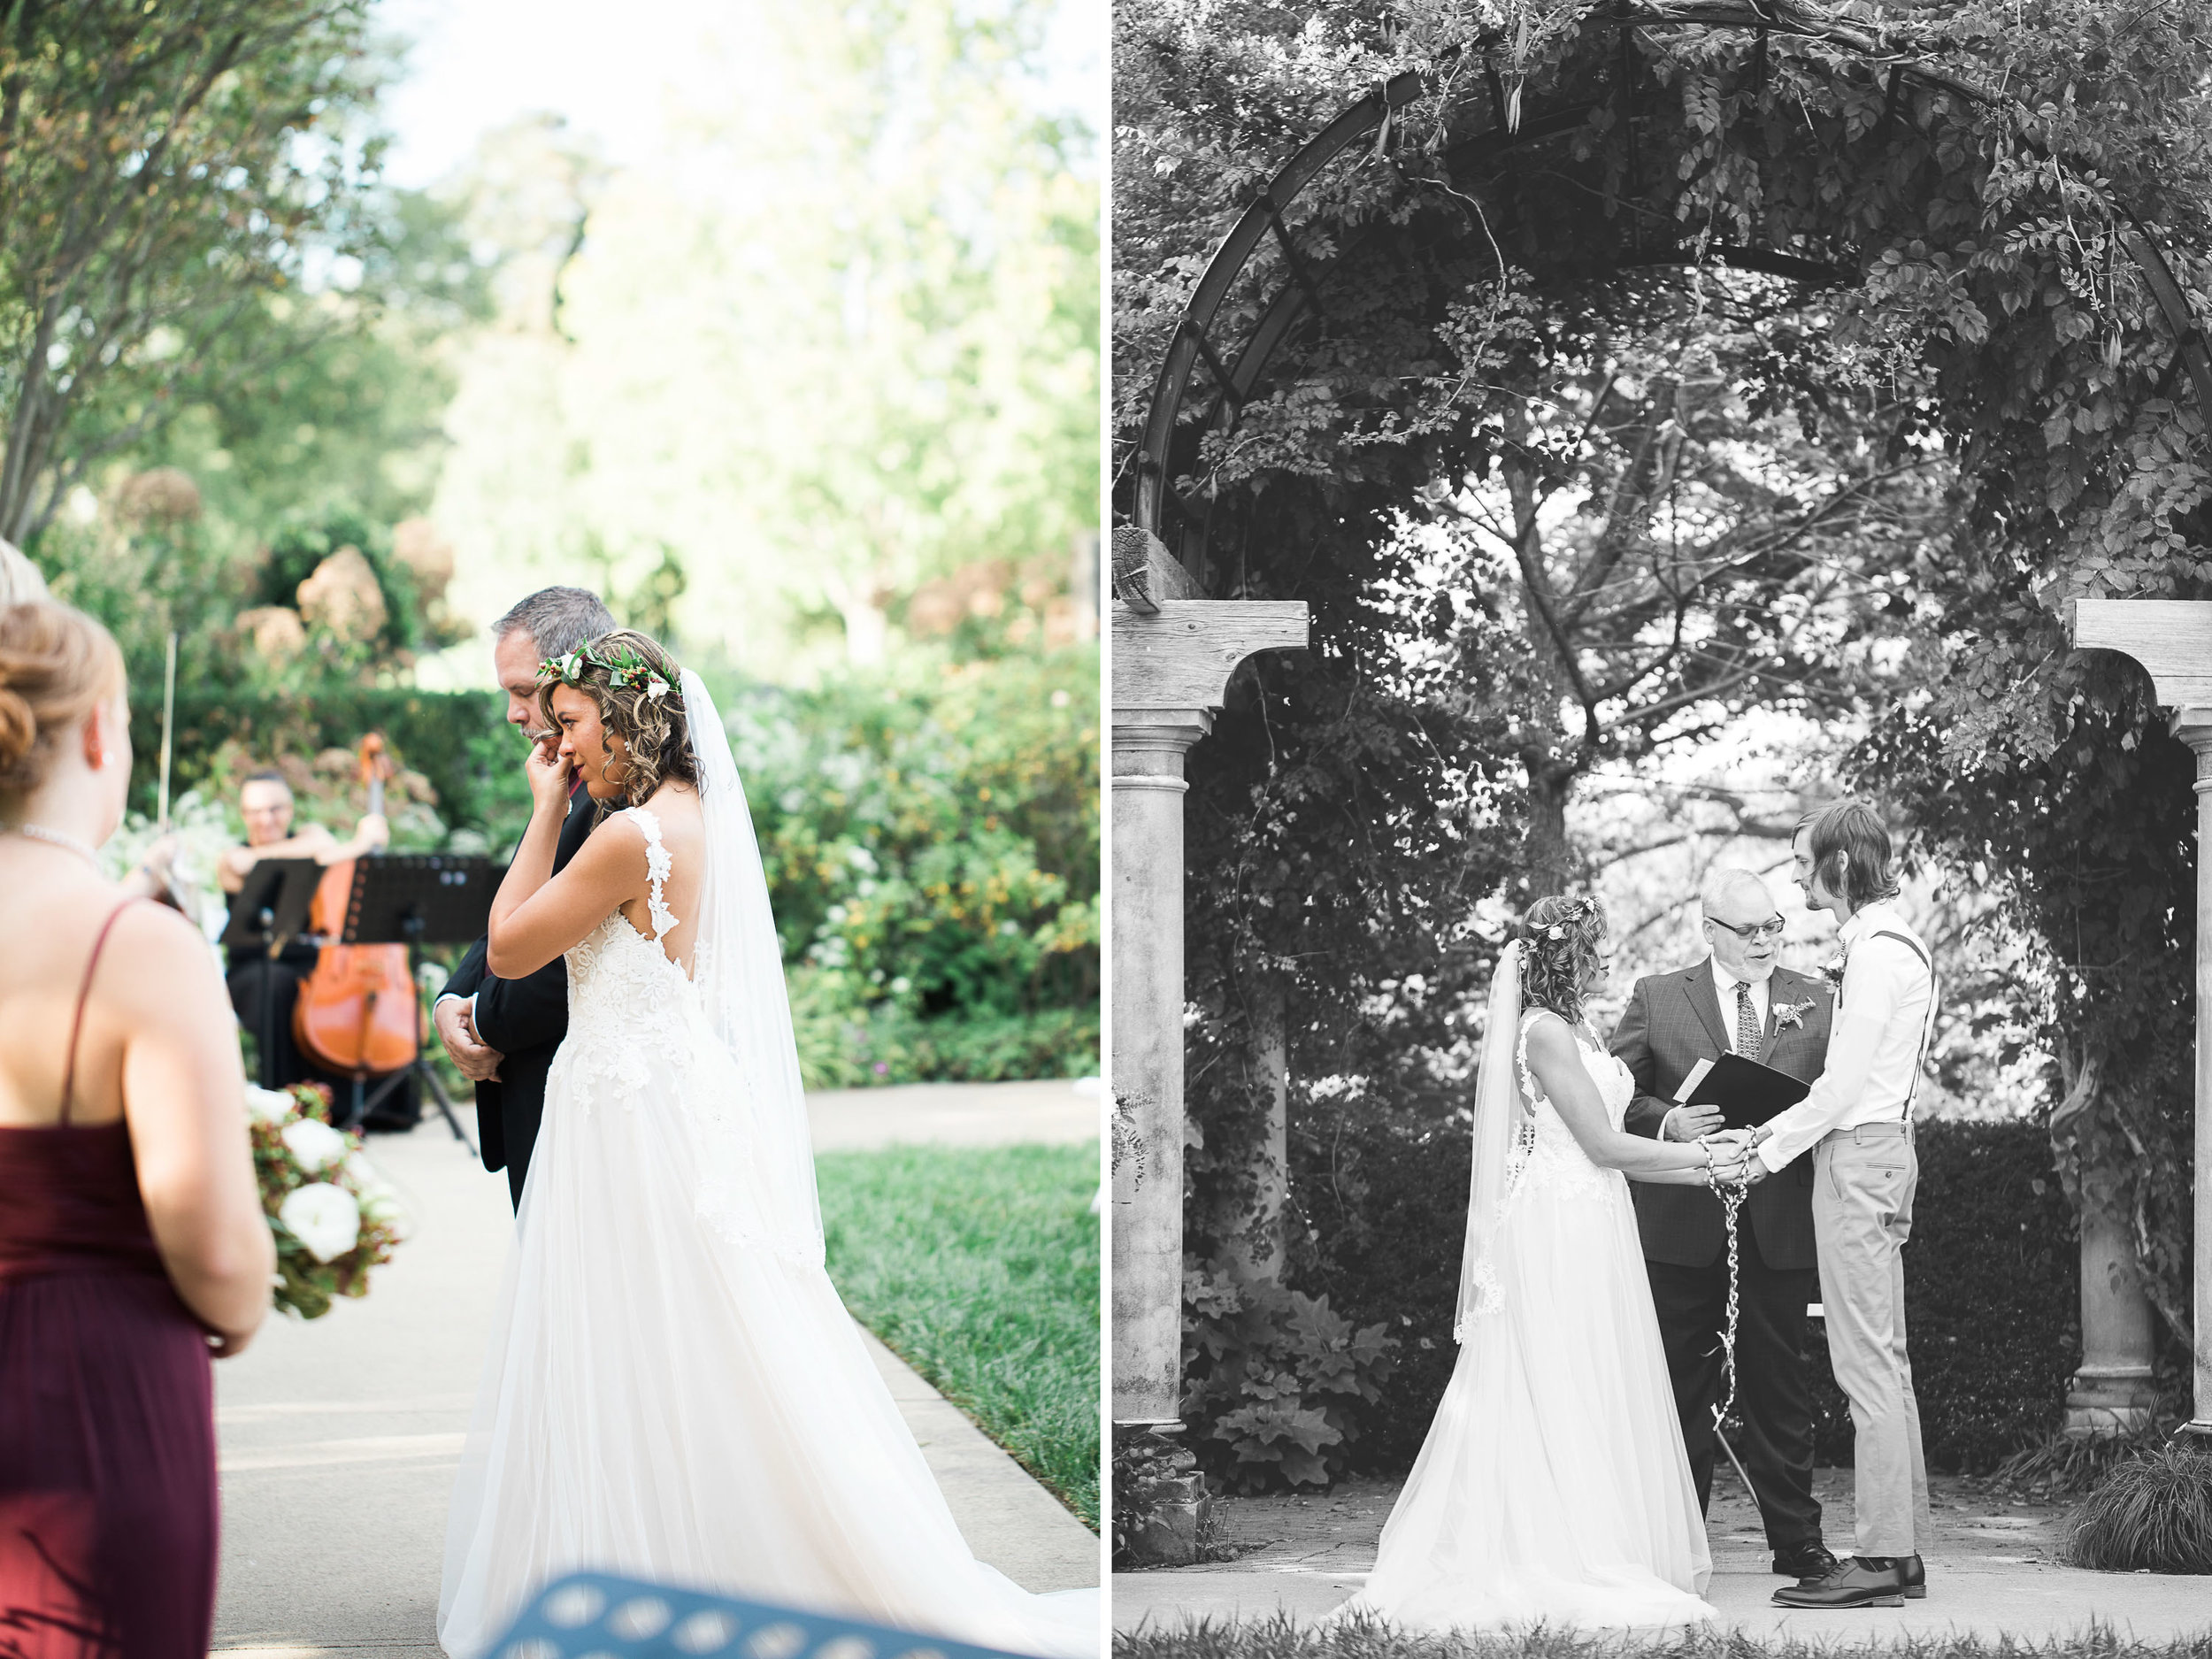 c - ault park wedding 2.jpg